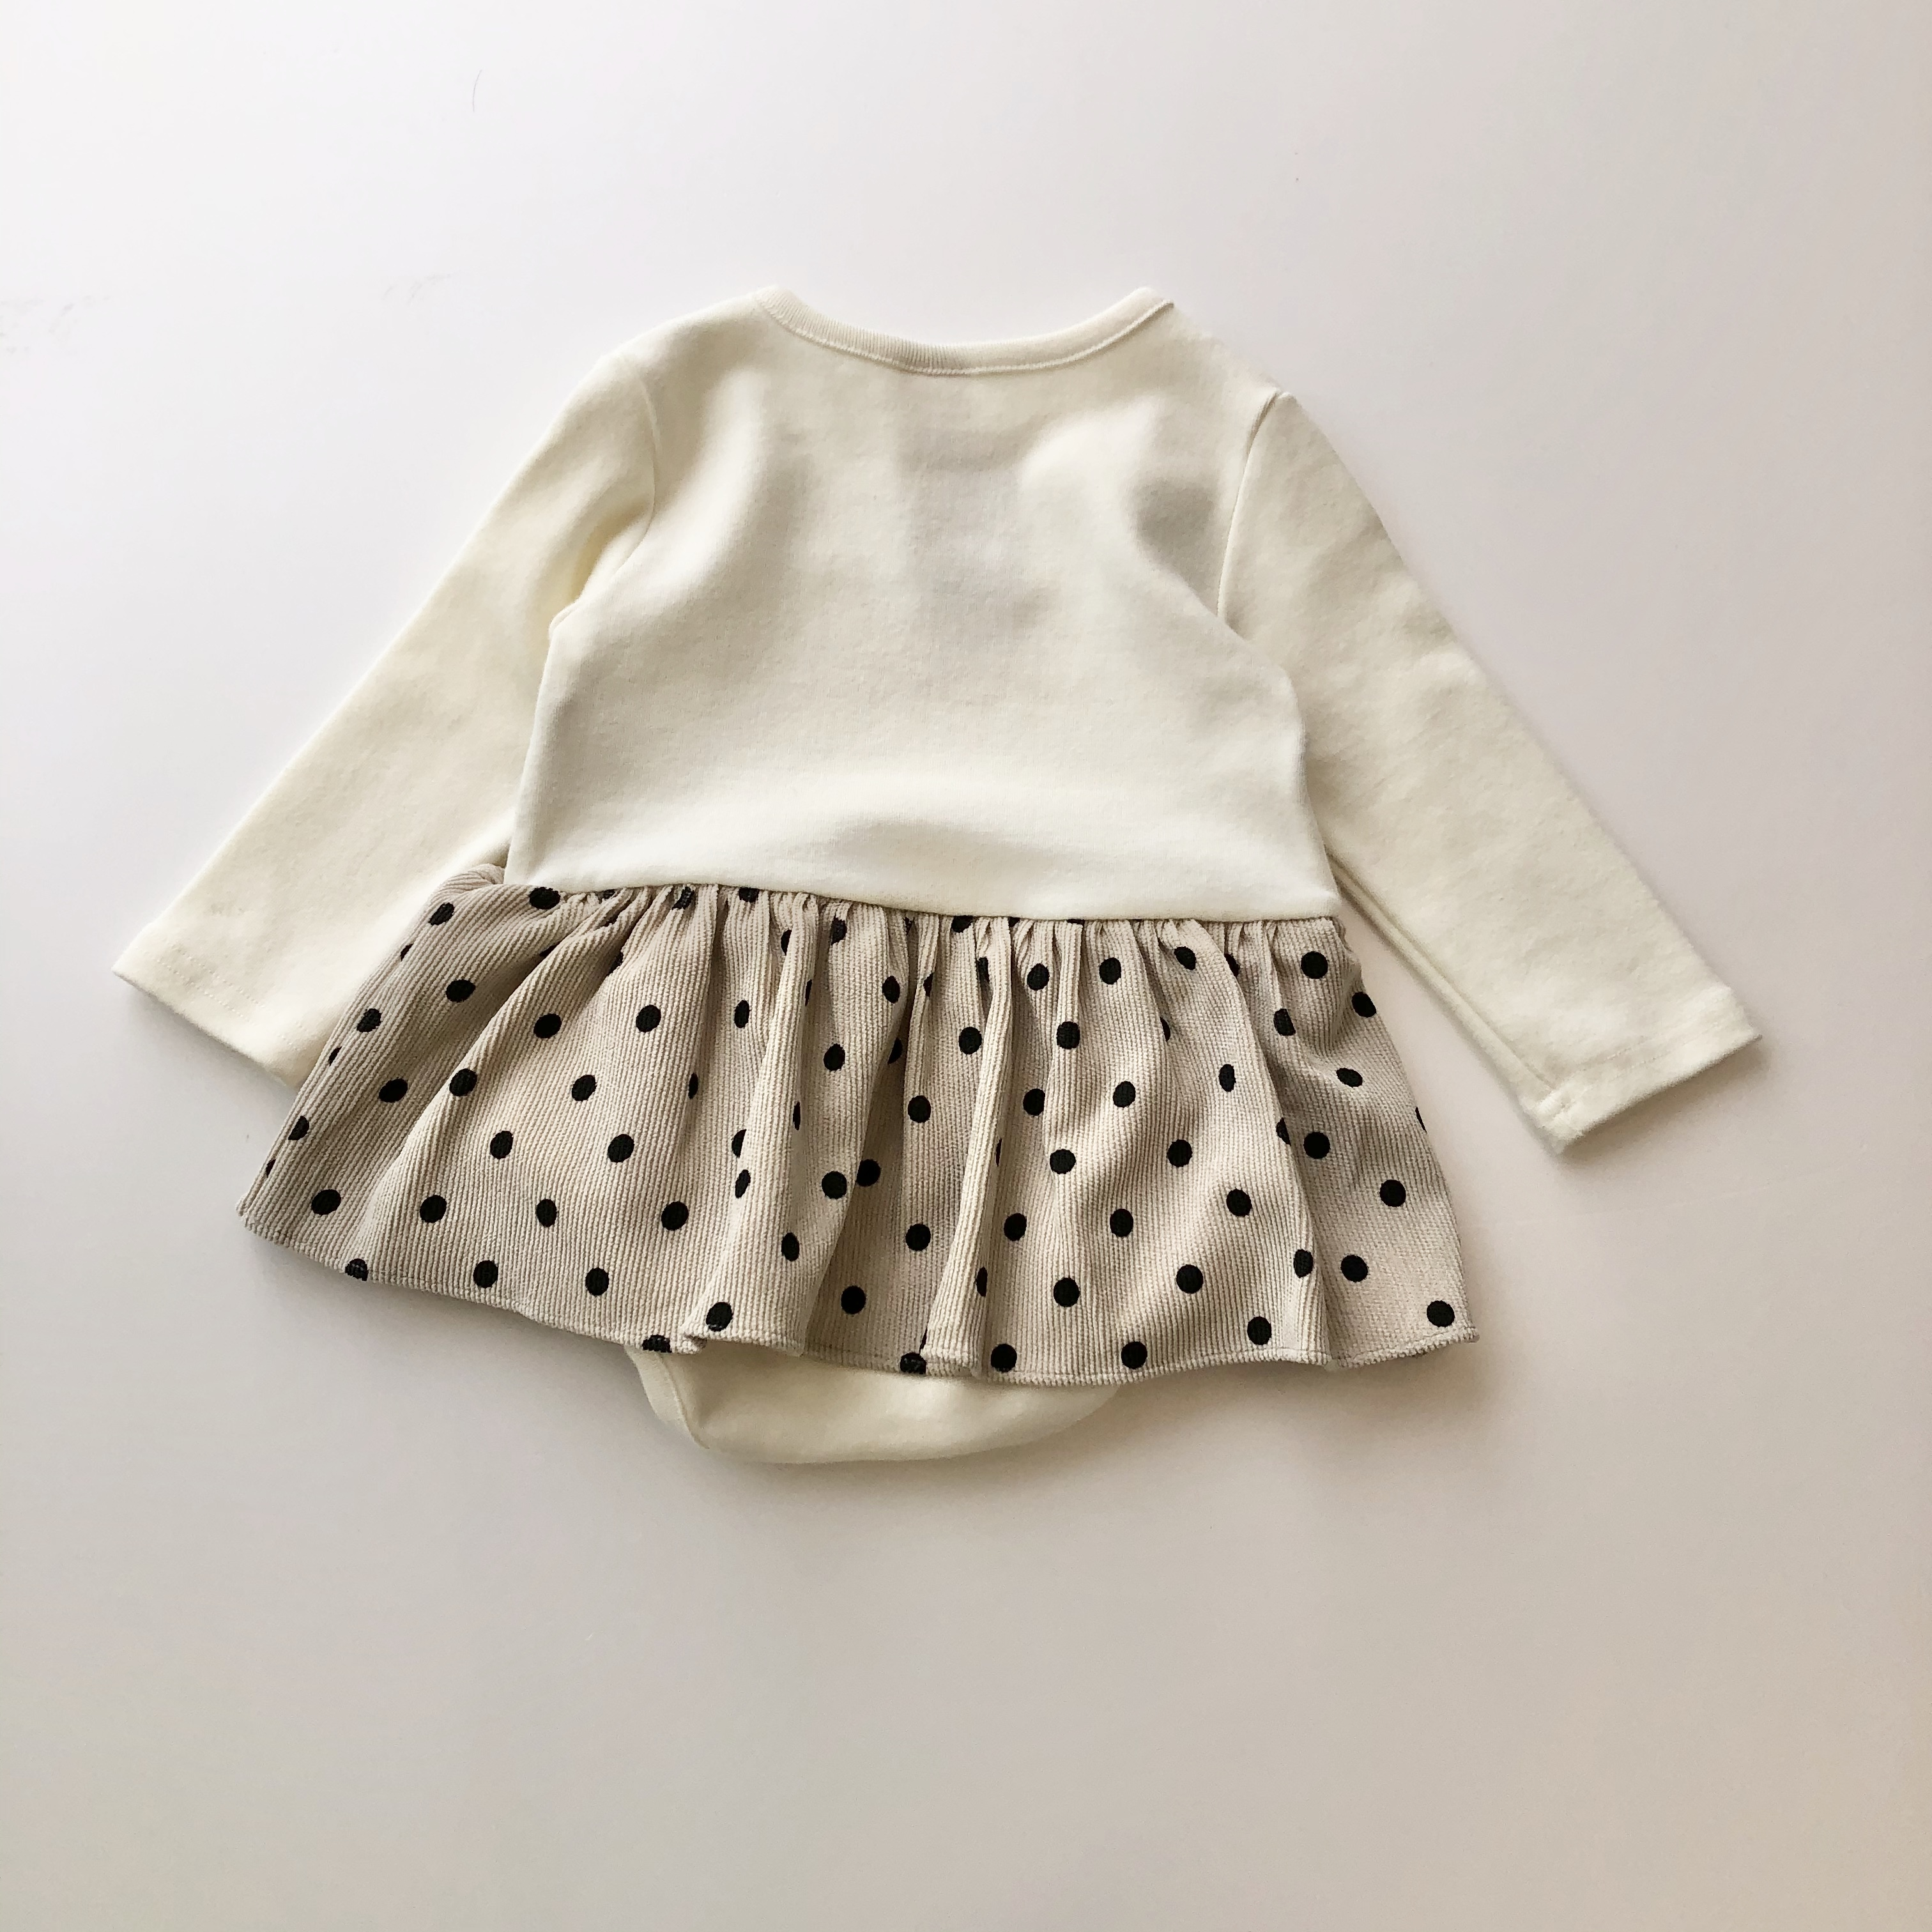 NO.996 cami one-pi rompers